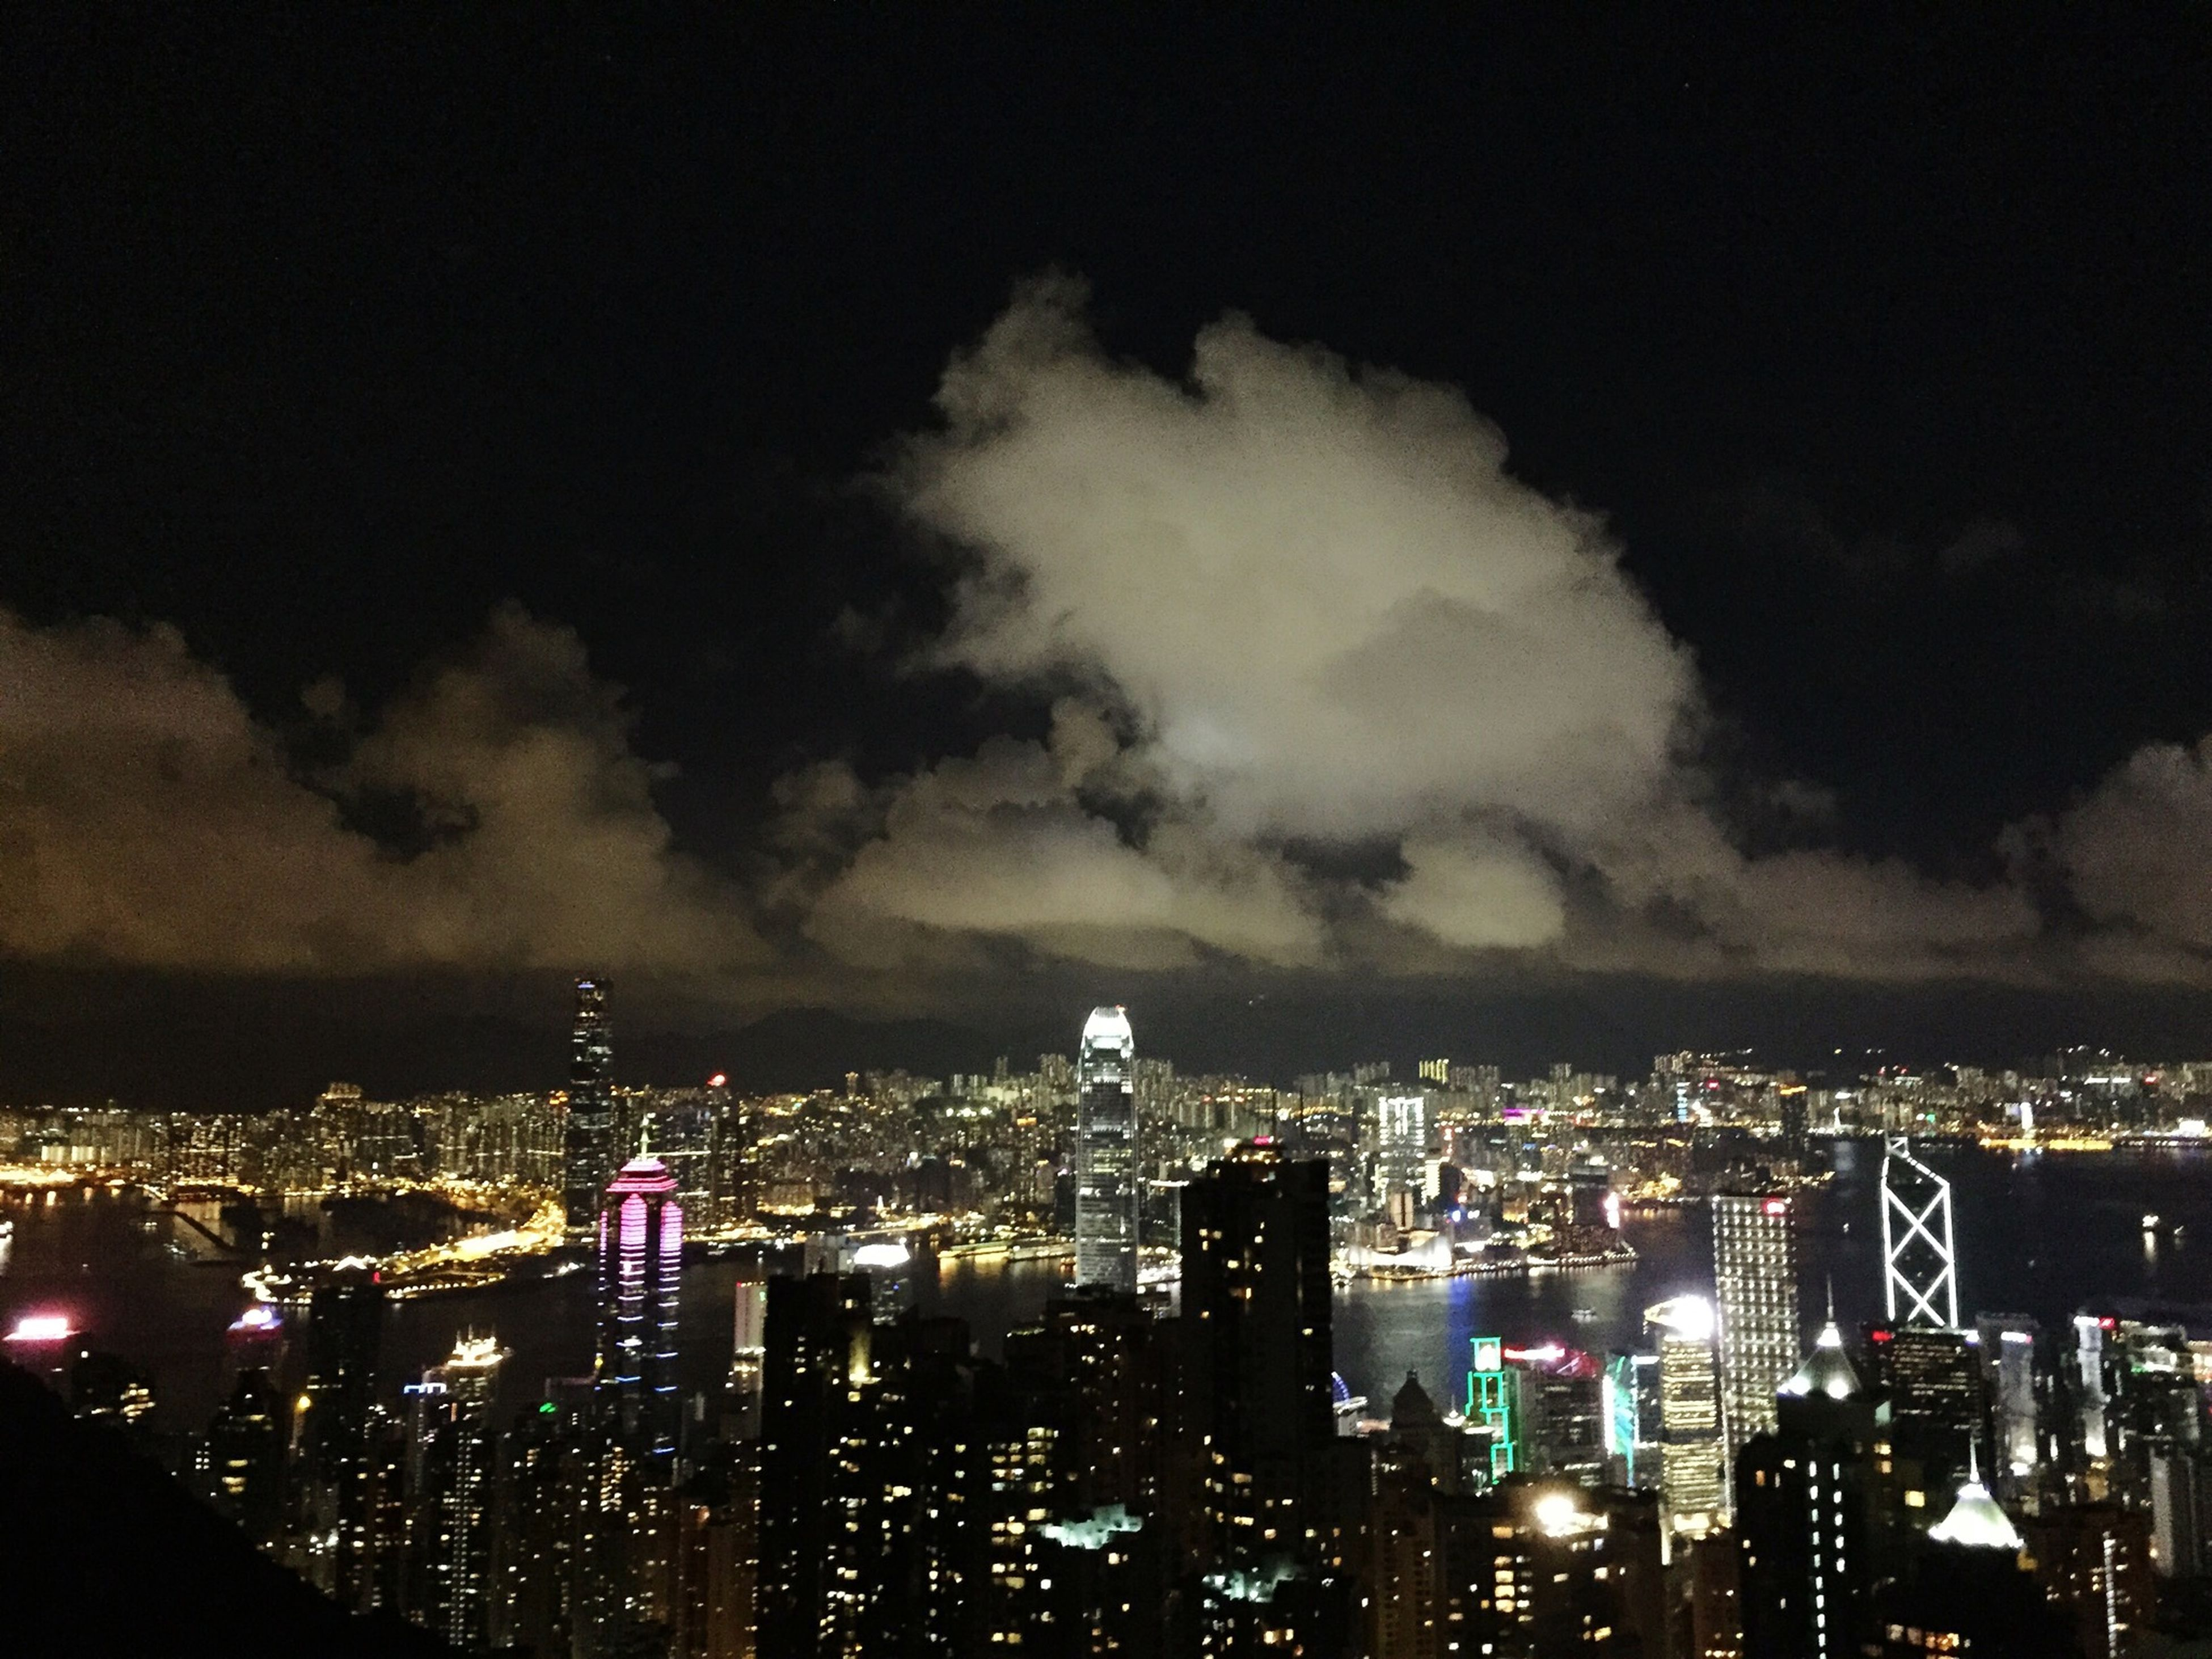 cityscape, city, illuminated, building exterior, night, architecture, built structure, skyscraper, sky, crowded, modern, urban skyline, tall - high, tower, office building, cloud - sky, residential district, financial district, development, residential building